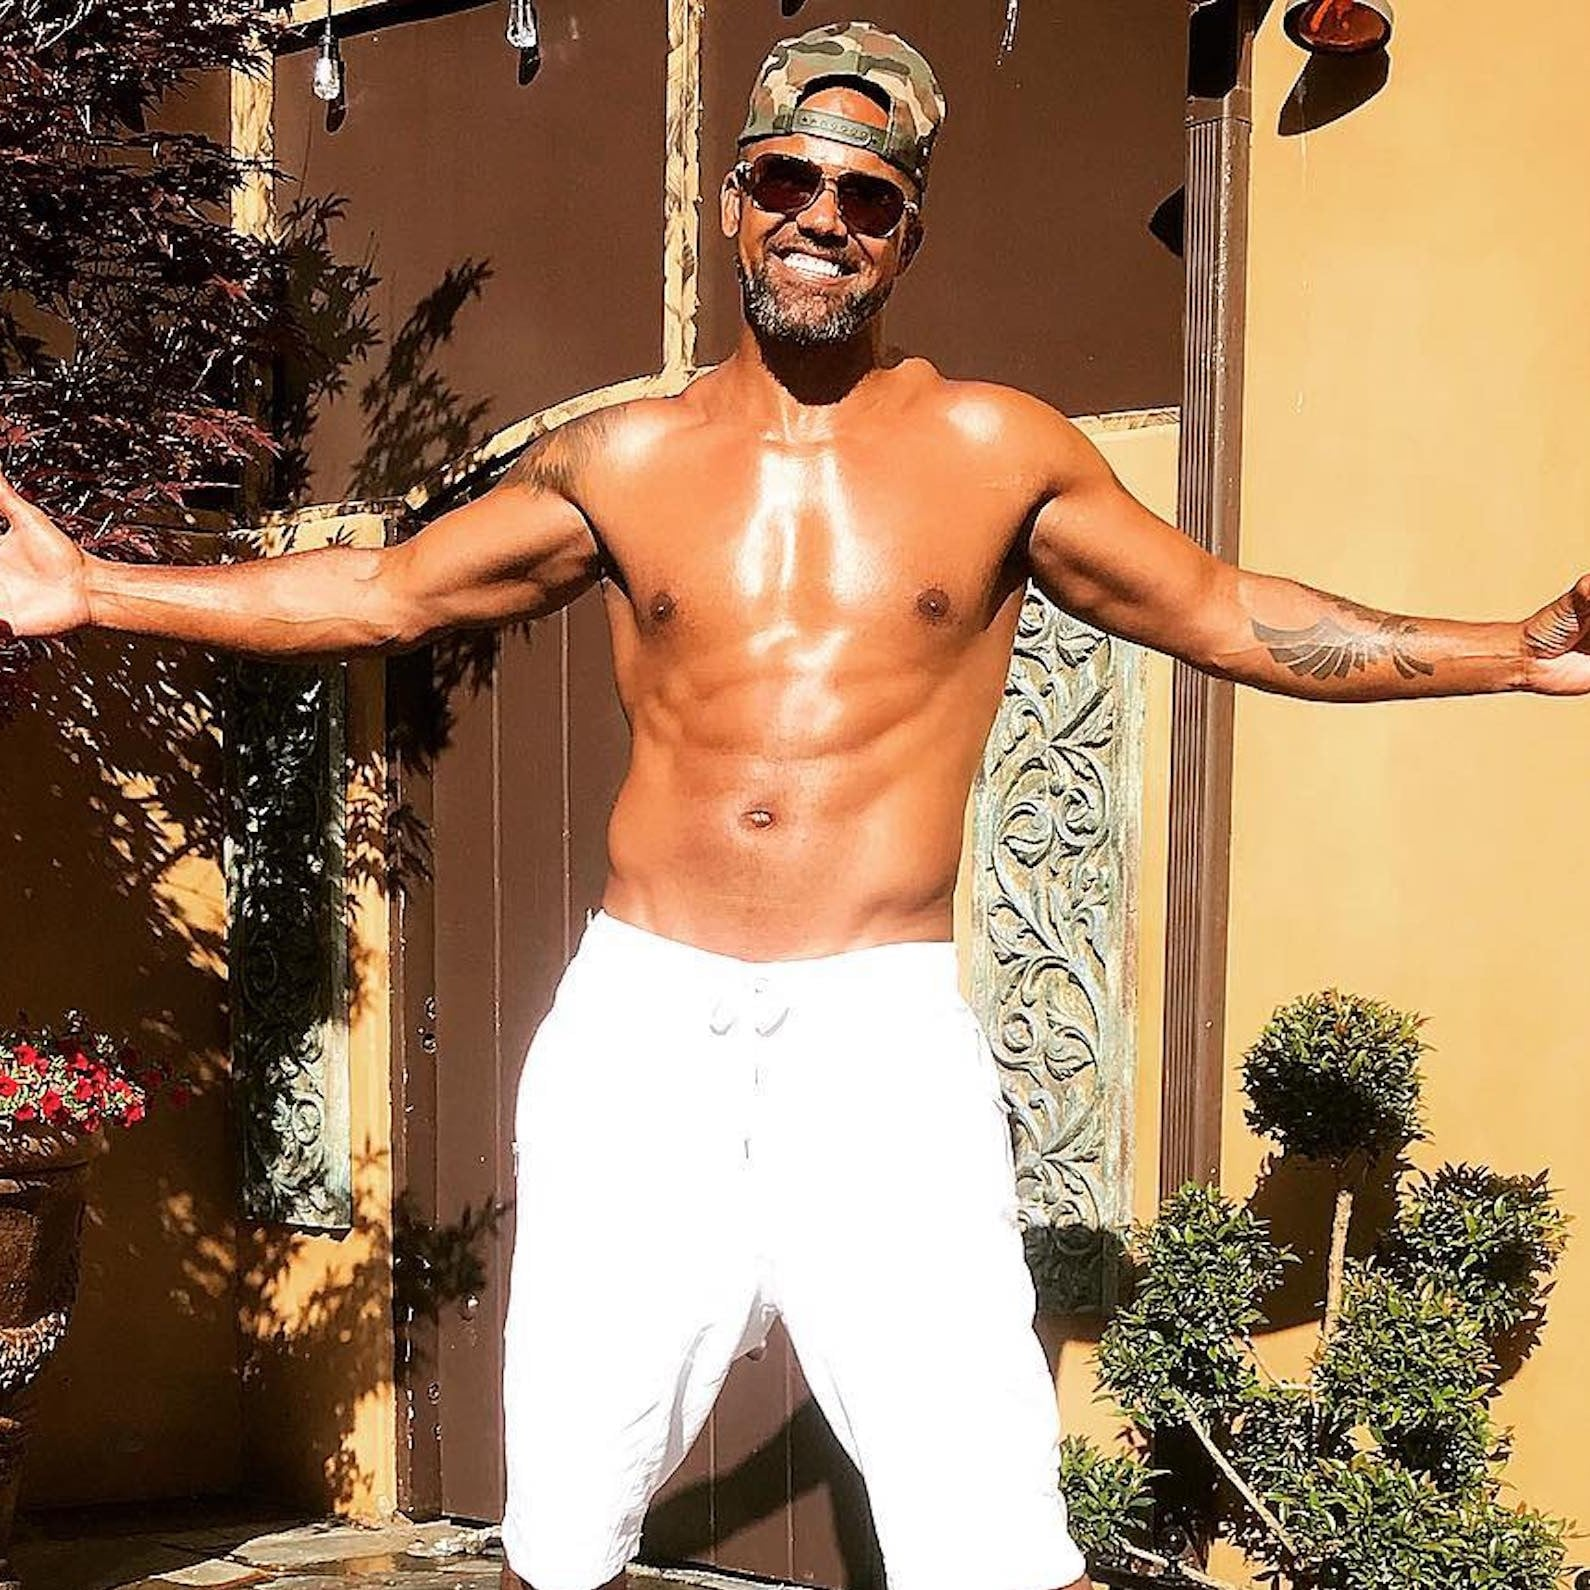 Something also shemar moore nude